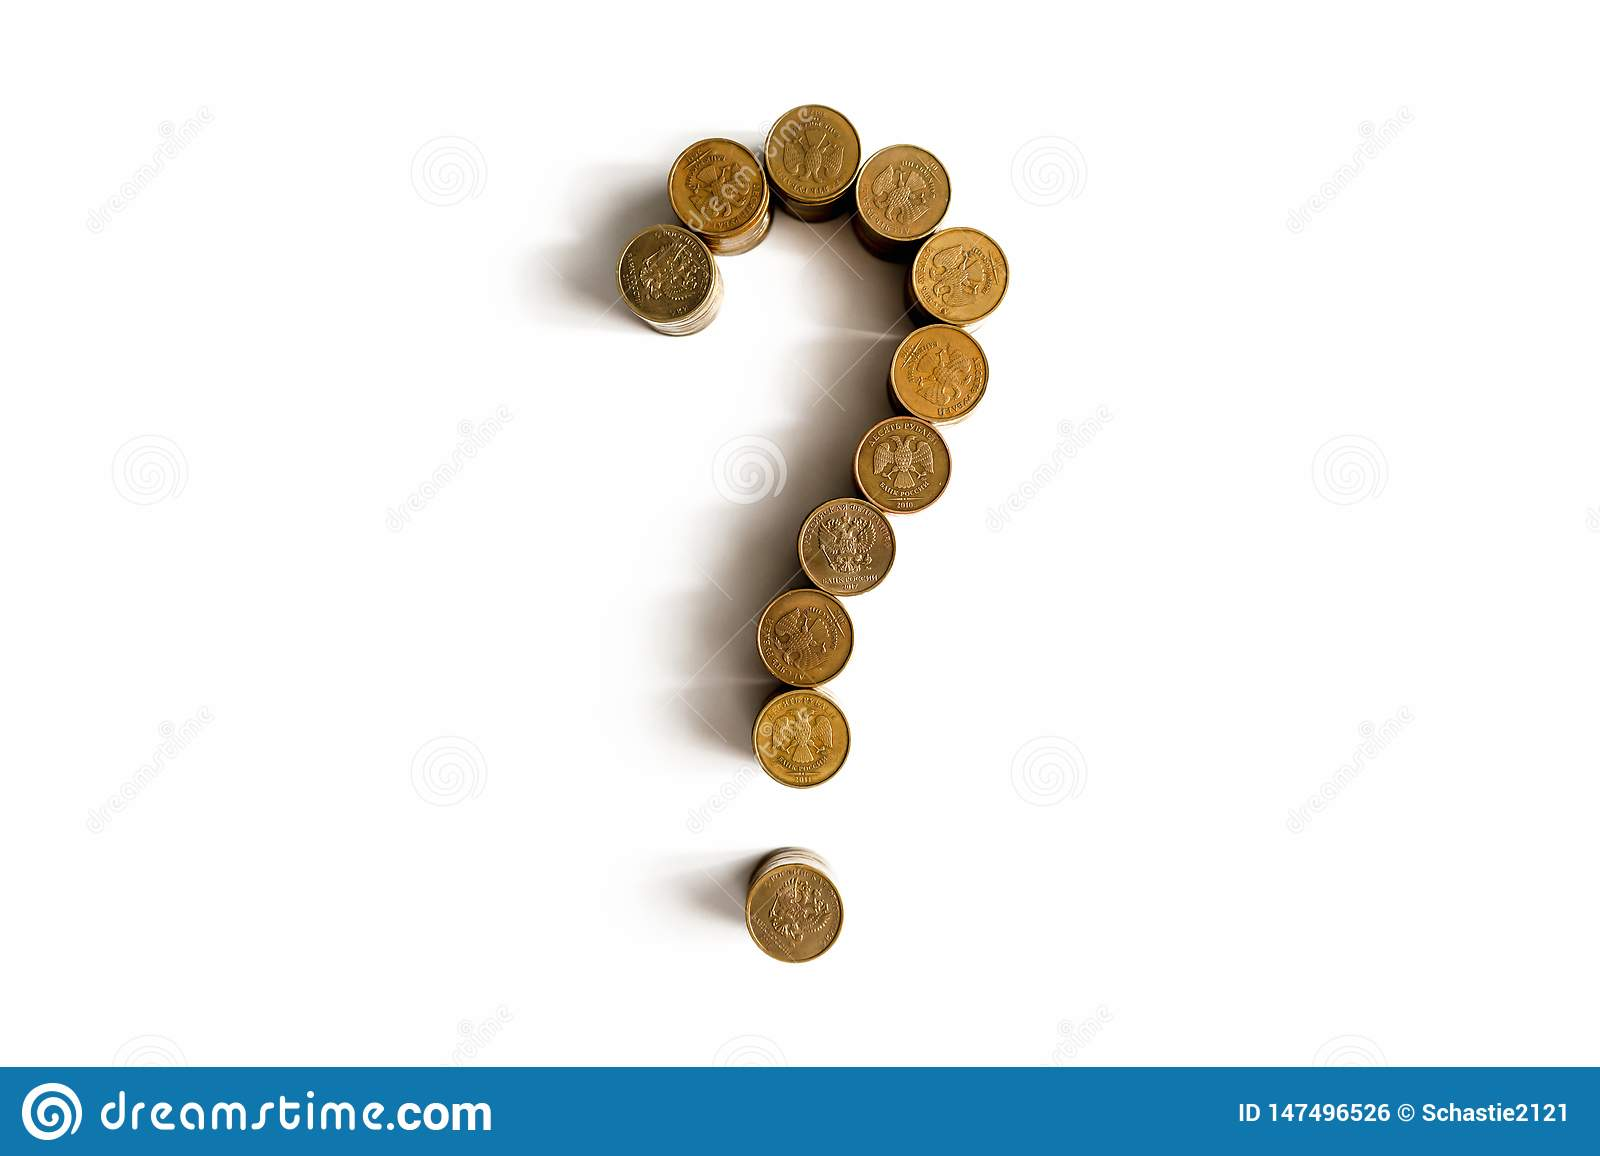 Question mark made of coins on a white background